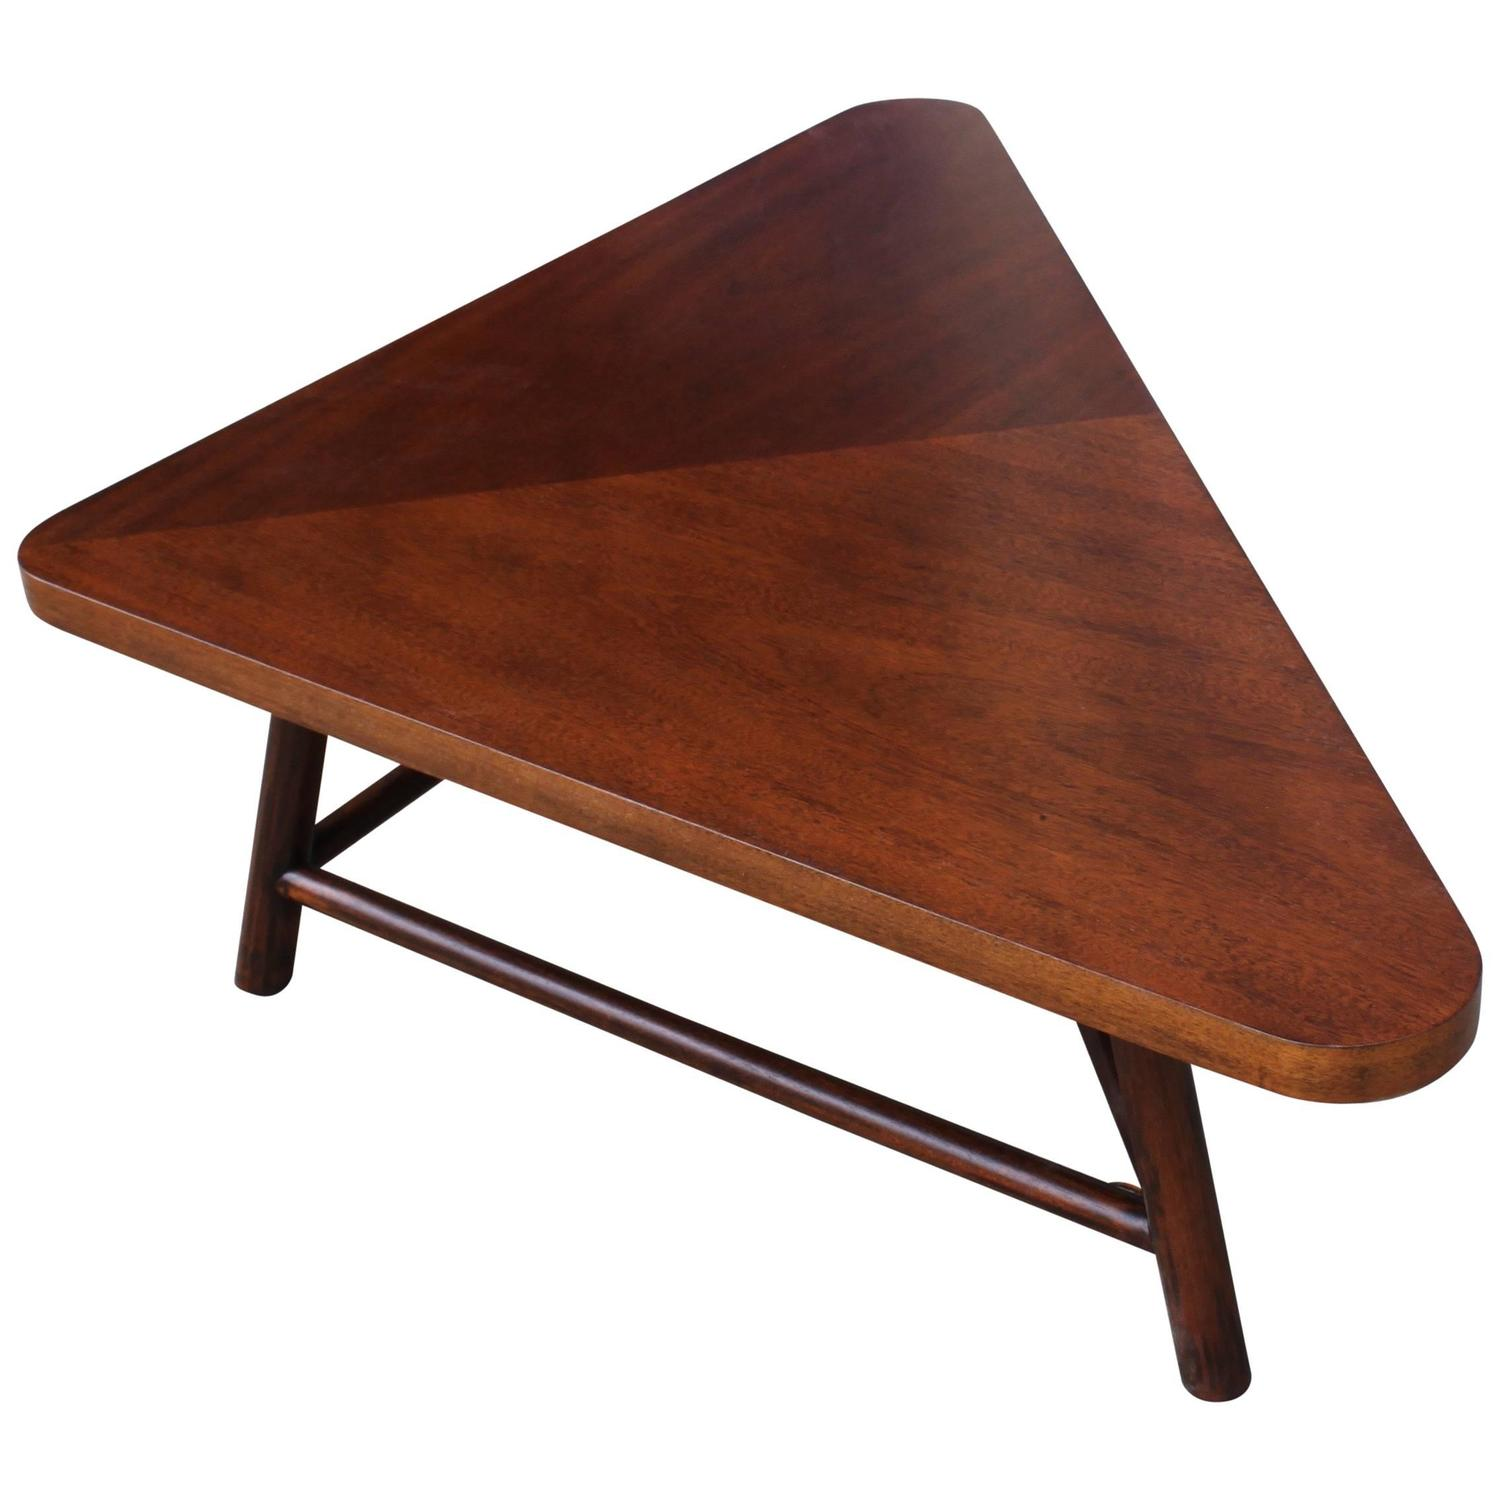 robsjohn gibbings triangular coffee table at 1stdibs. Black Bedroom Furniture Sets. Home Design Ideas